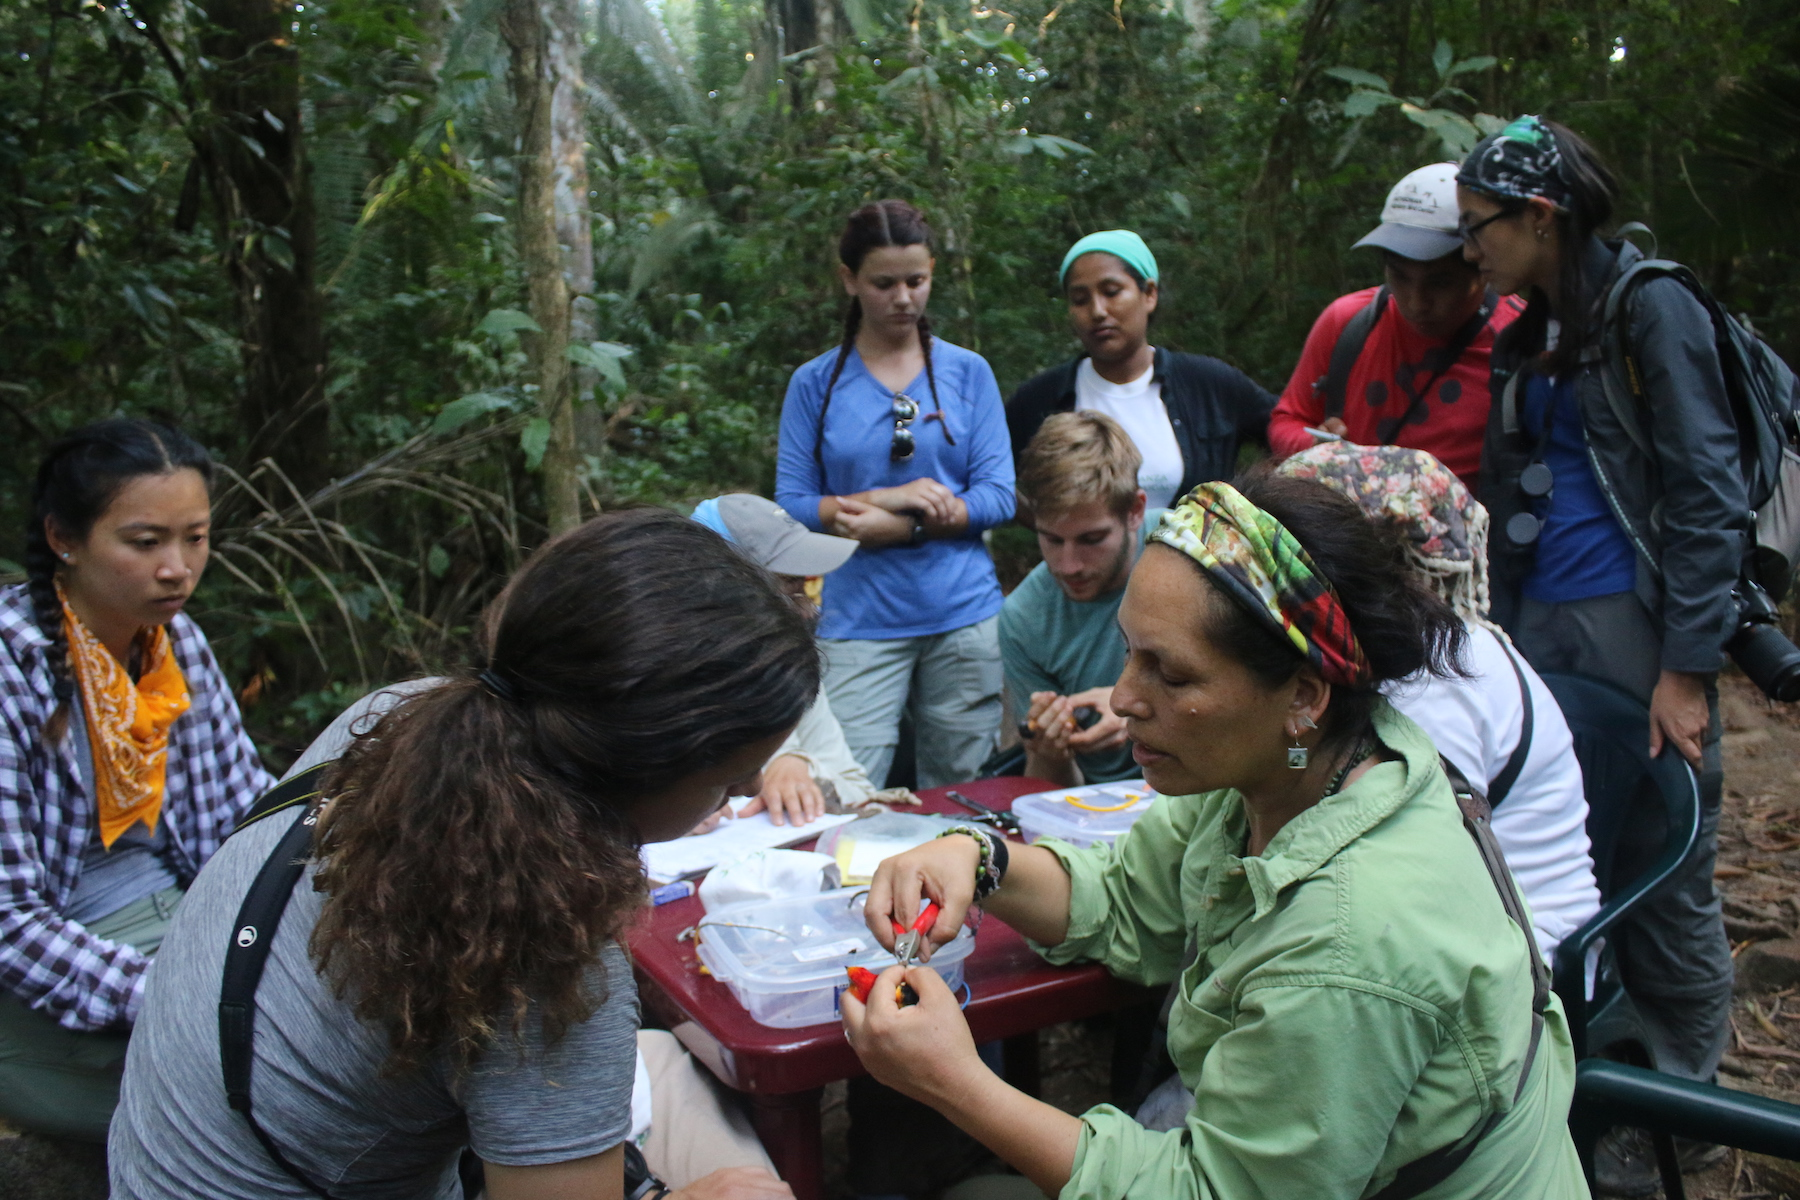 Ursula Valdez     ,    co-founder of CECCOT   ,    leads a group in banding birds within our conservation area.